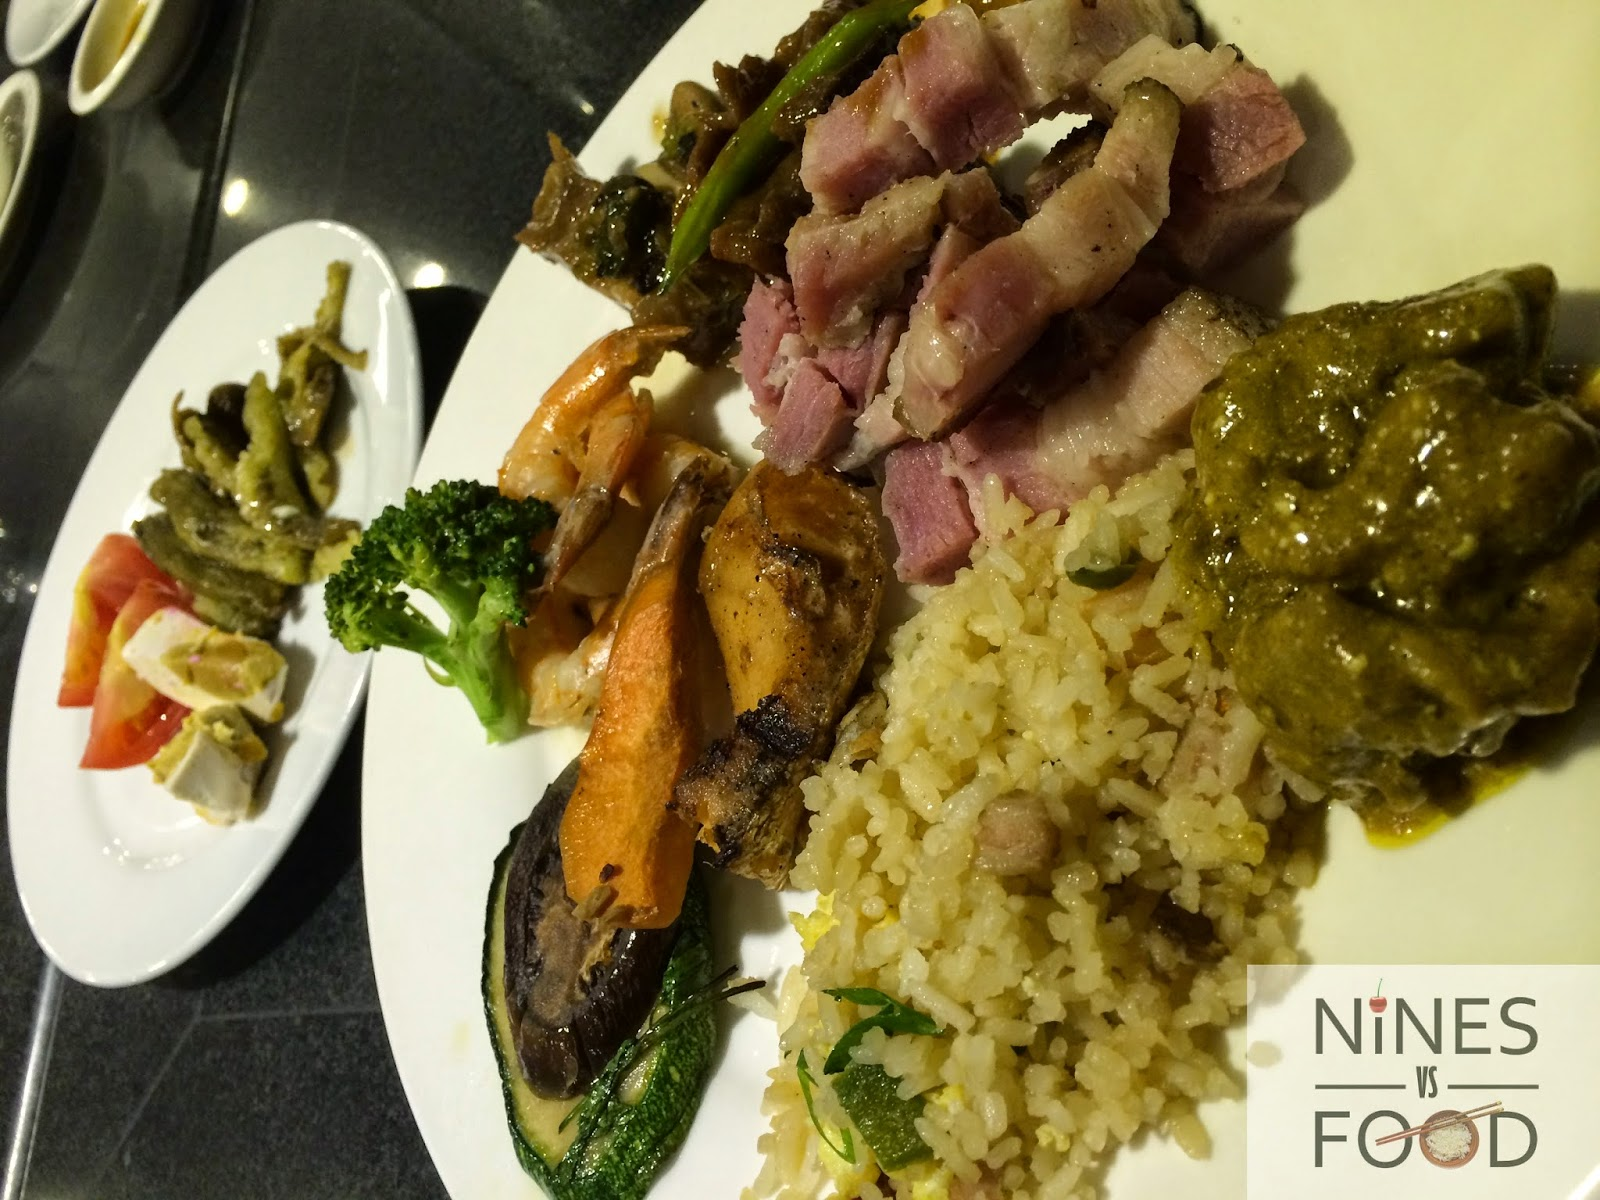 Nines vs. Food - Dinelli Gourmet Weekend Dinner Buffet Le Monet Hotel Baguio-22.jpg